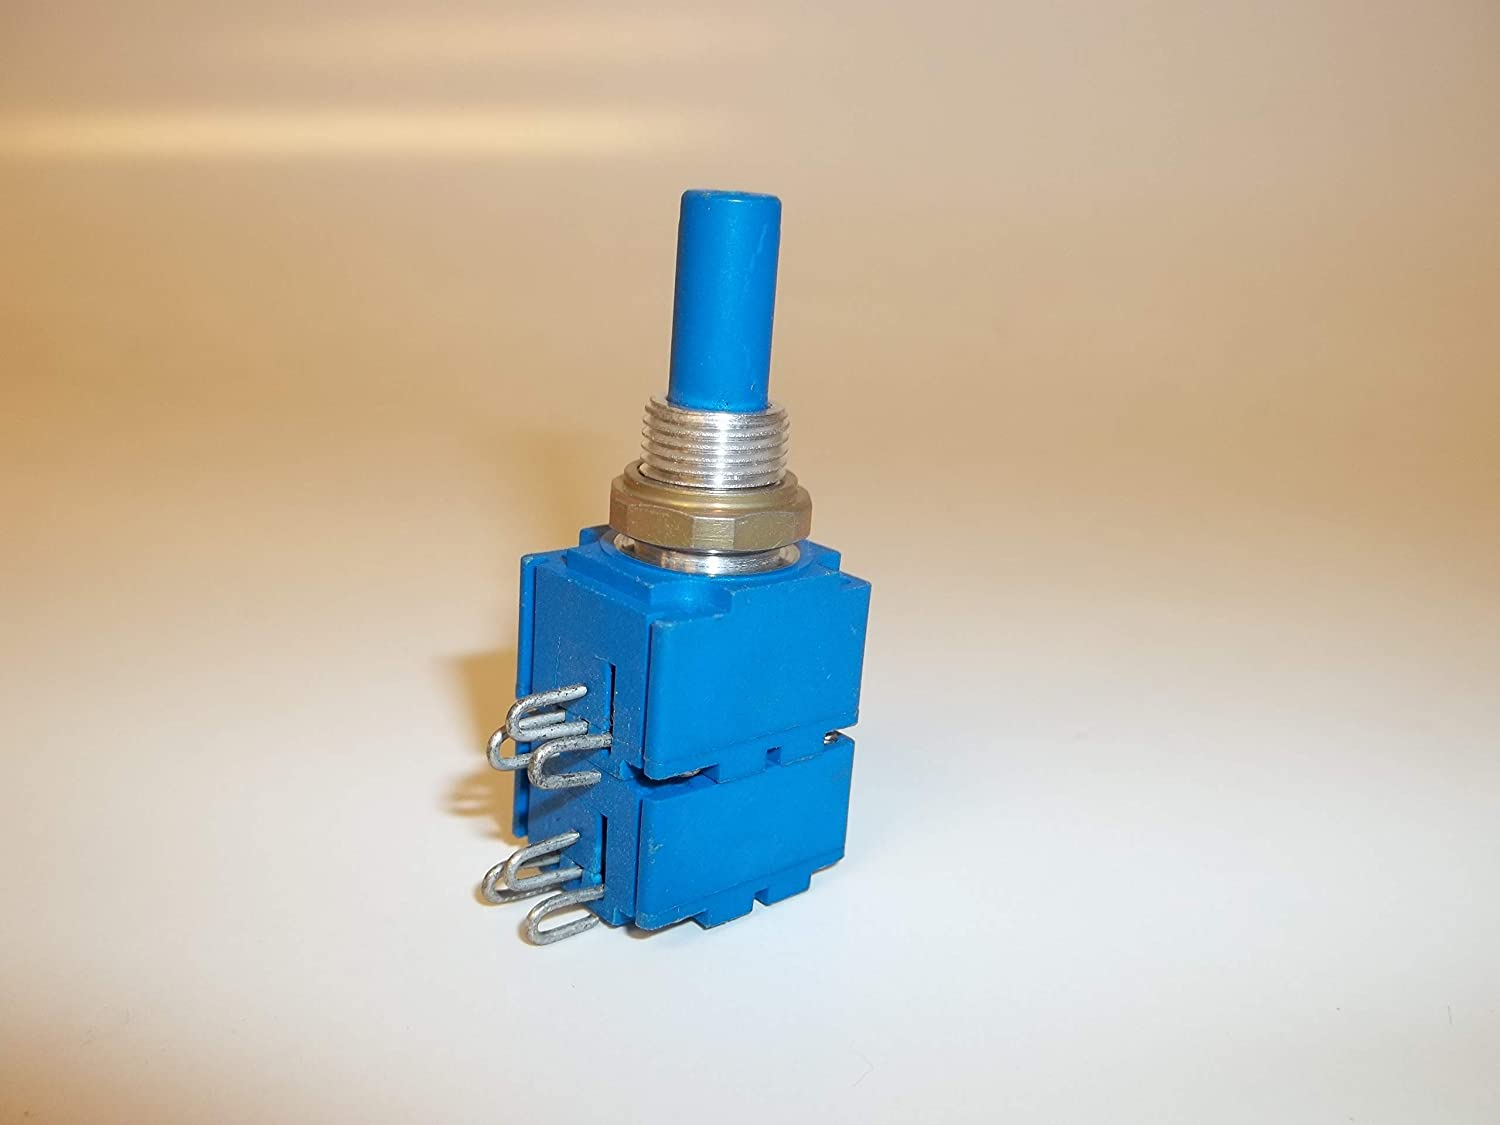 Details about  /CTS 10K Potentiometer Model # WG15628 Two Brand New Pots 10K Ohms